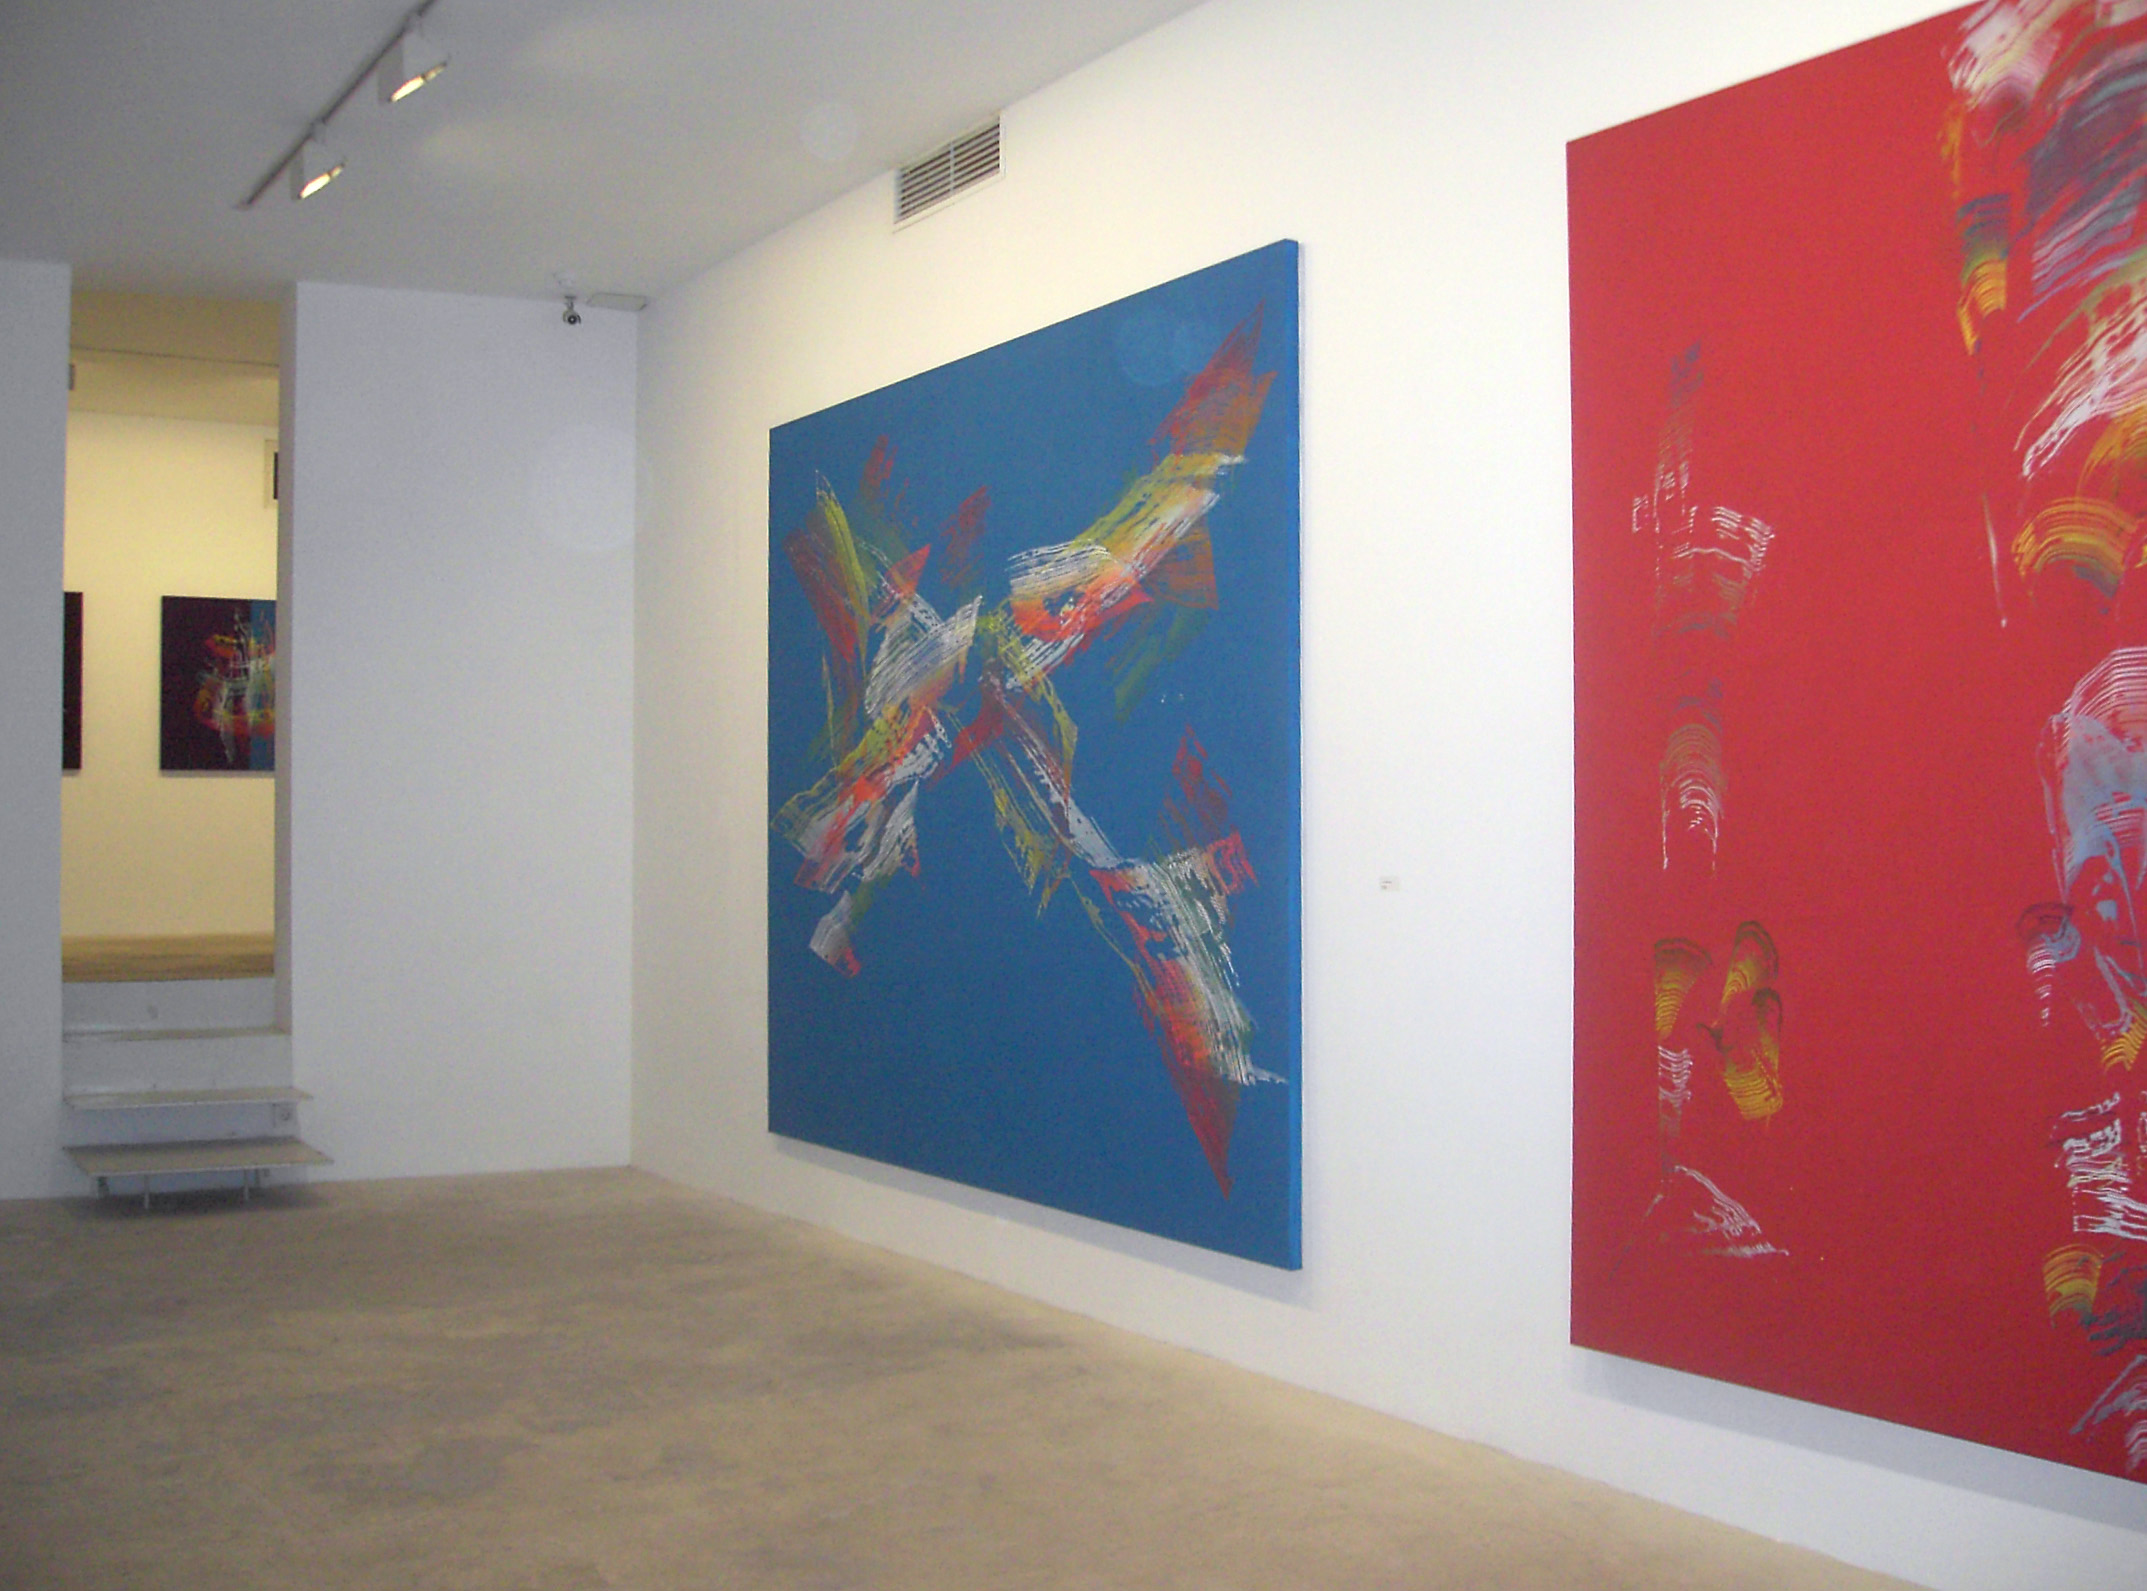 Exhibition view from Broto, 2005